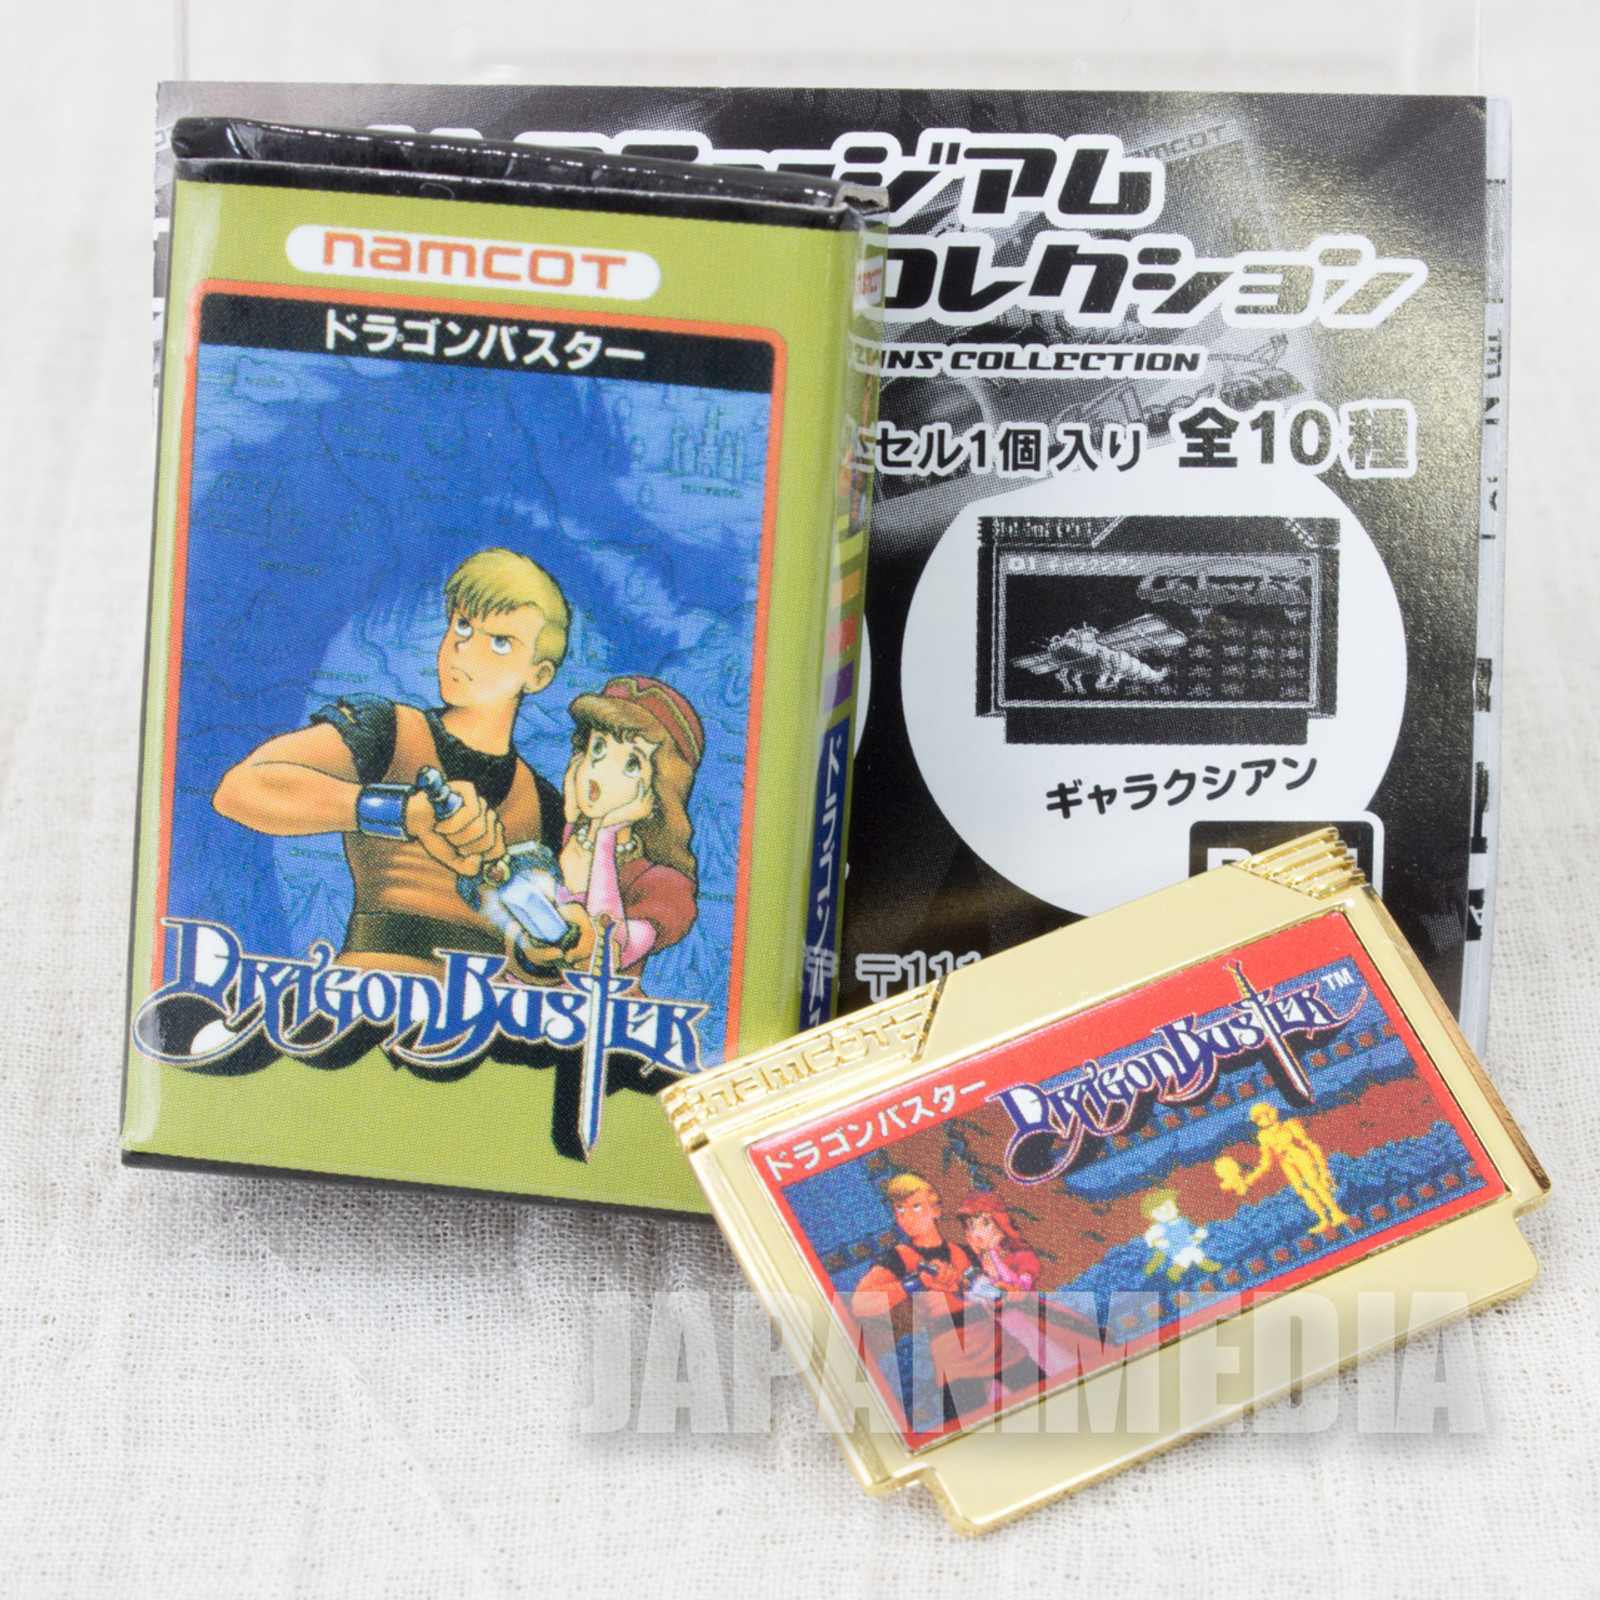 Dragon Buster Namco Museum Cassette Pins Collection BANDAI JAPAN FAMICOM NEC